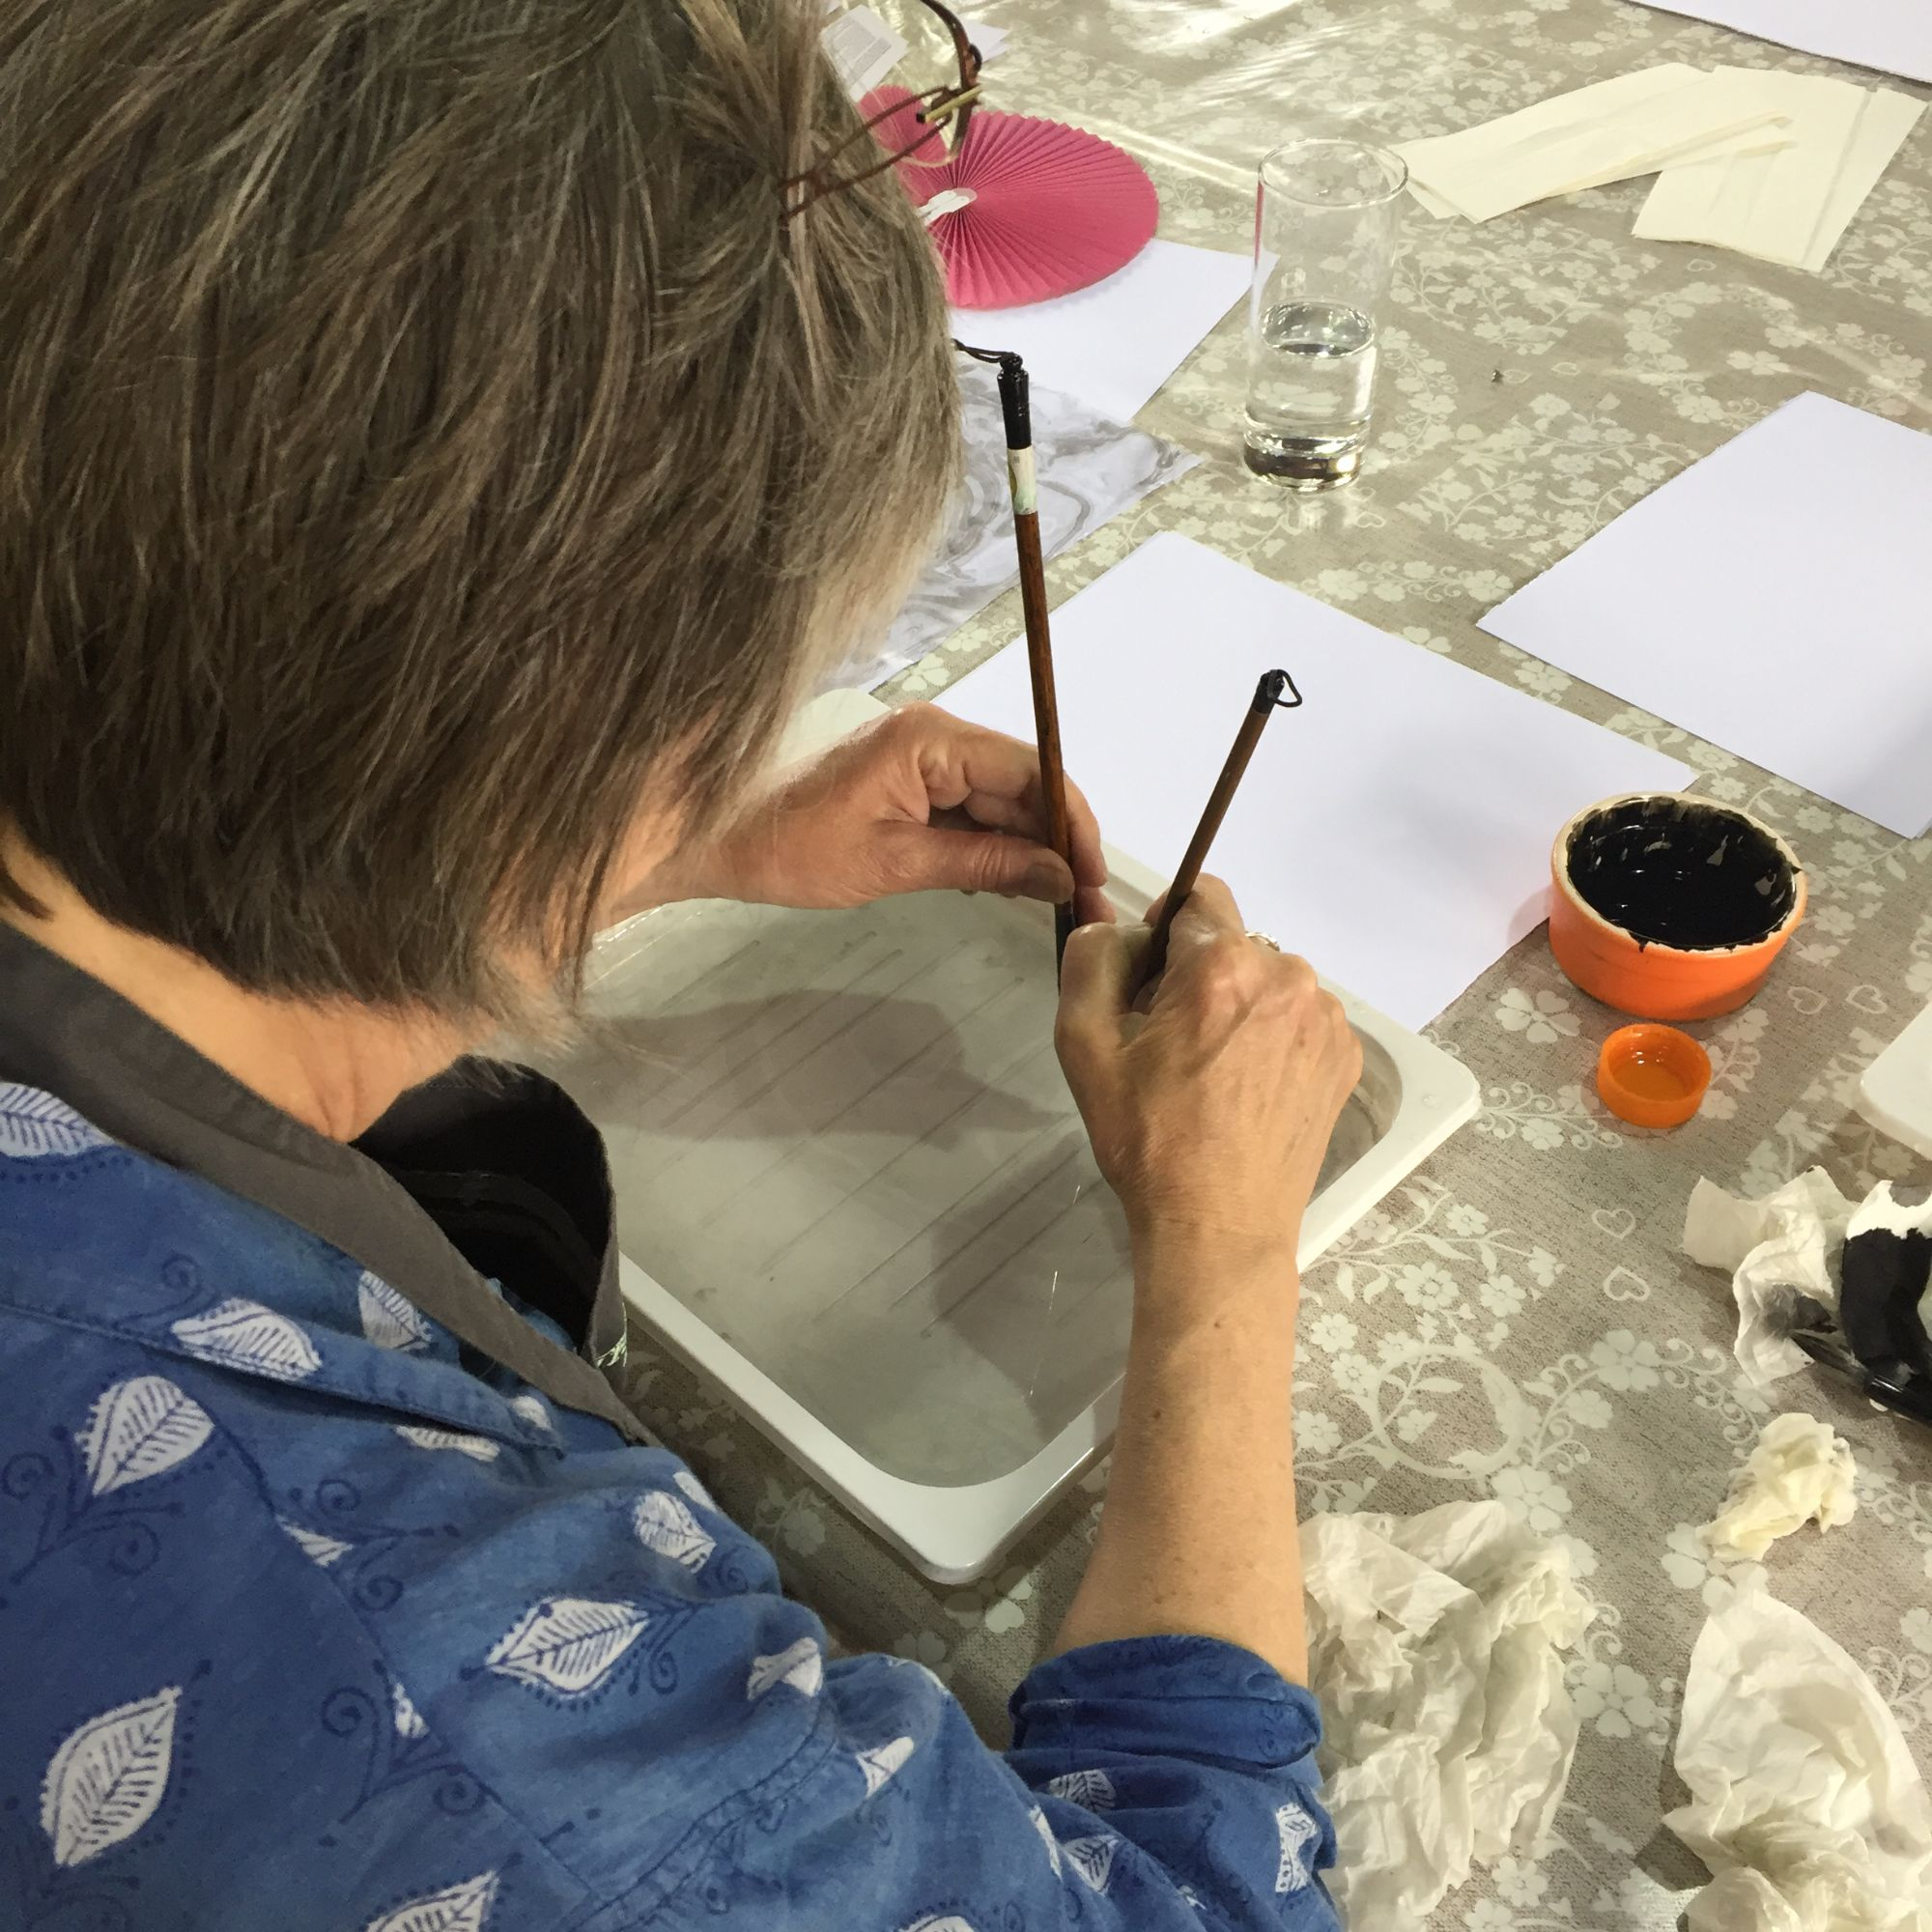 Japanese Marbling and Travellers Leather Journal Workshop - Marbling